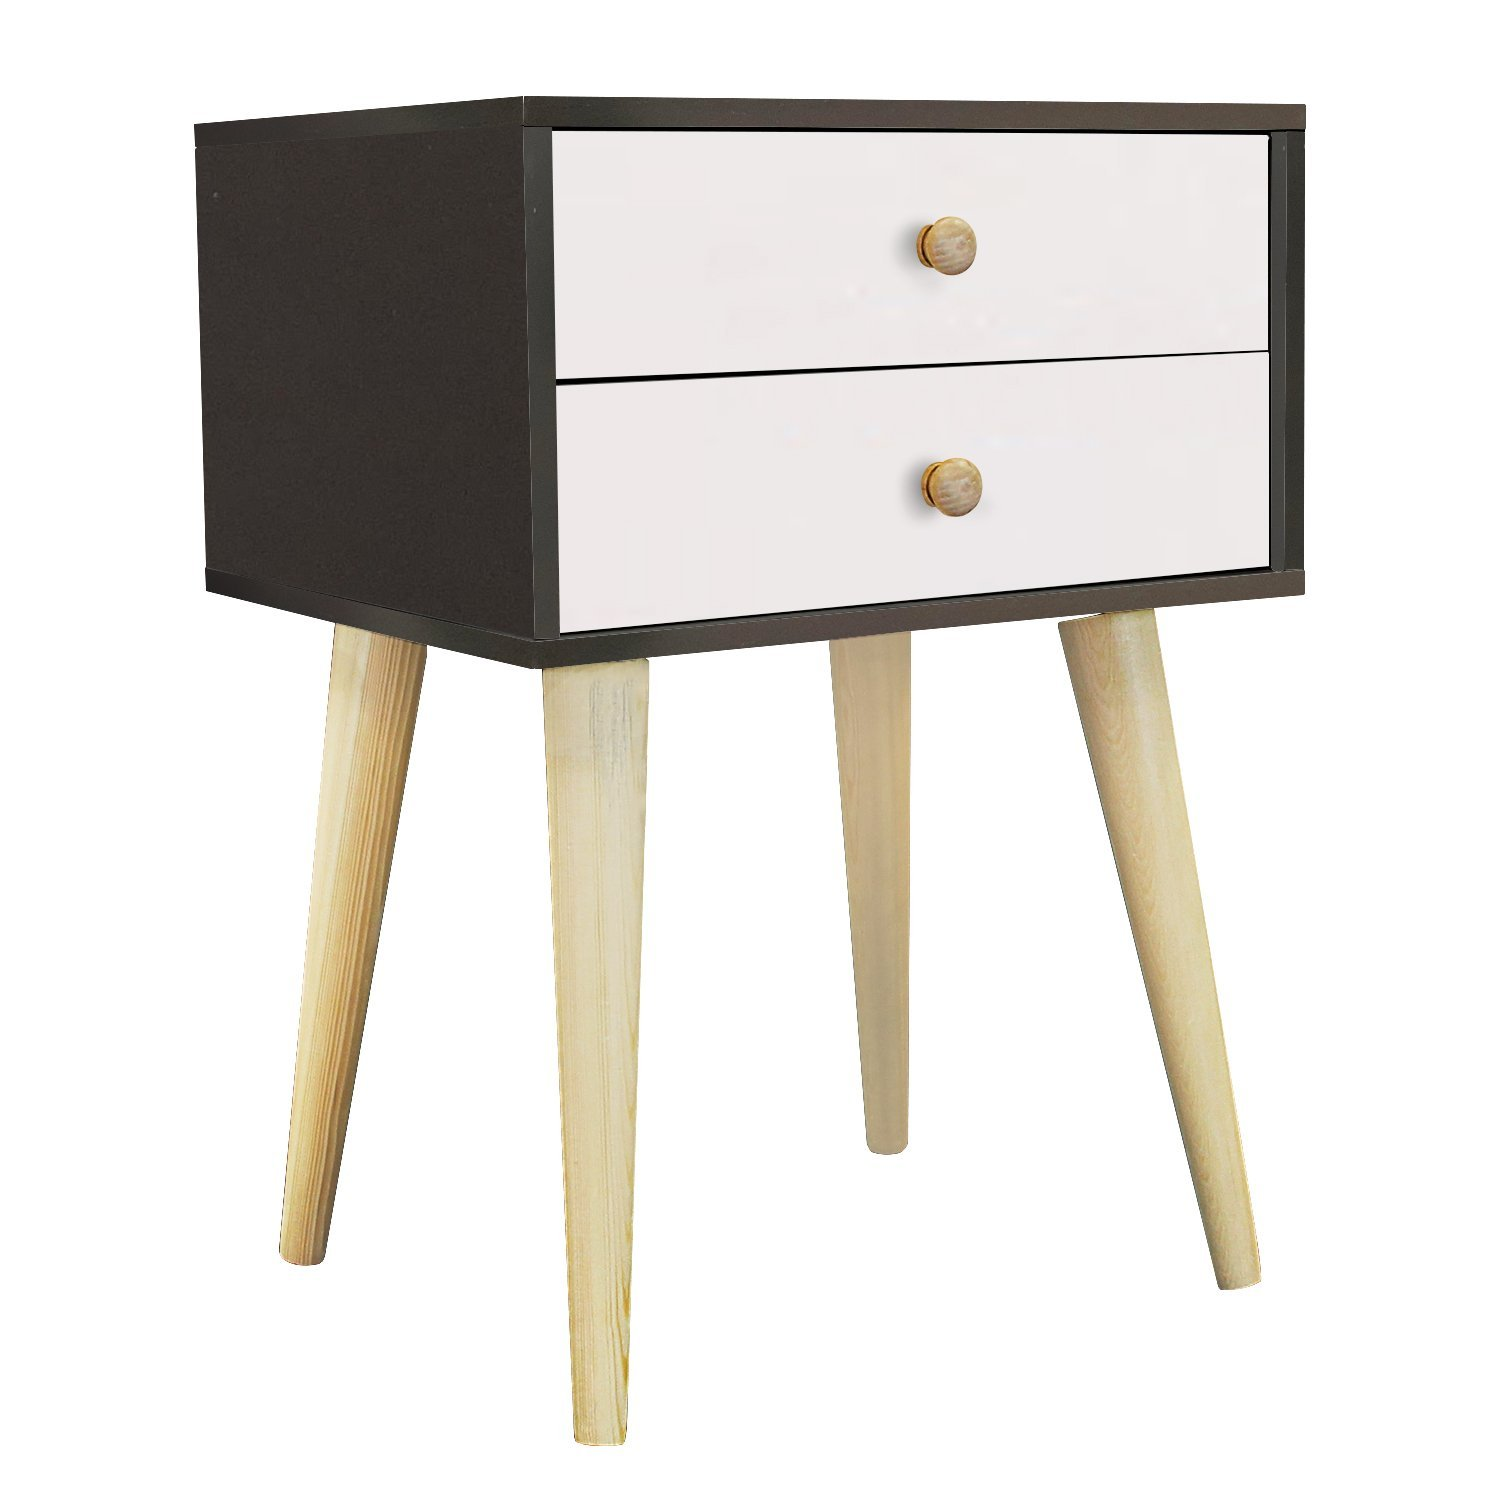 Jerry & Maggie - Nightstand Modern Fashion 4 Thin Long Legs Space Station - 2 Tier Cubic Night Stand Storage Bedside Table with 2 Drawer Real Natural Paulownia Wood   Navy & White